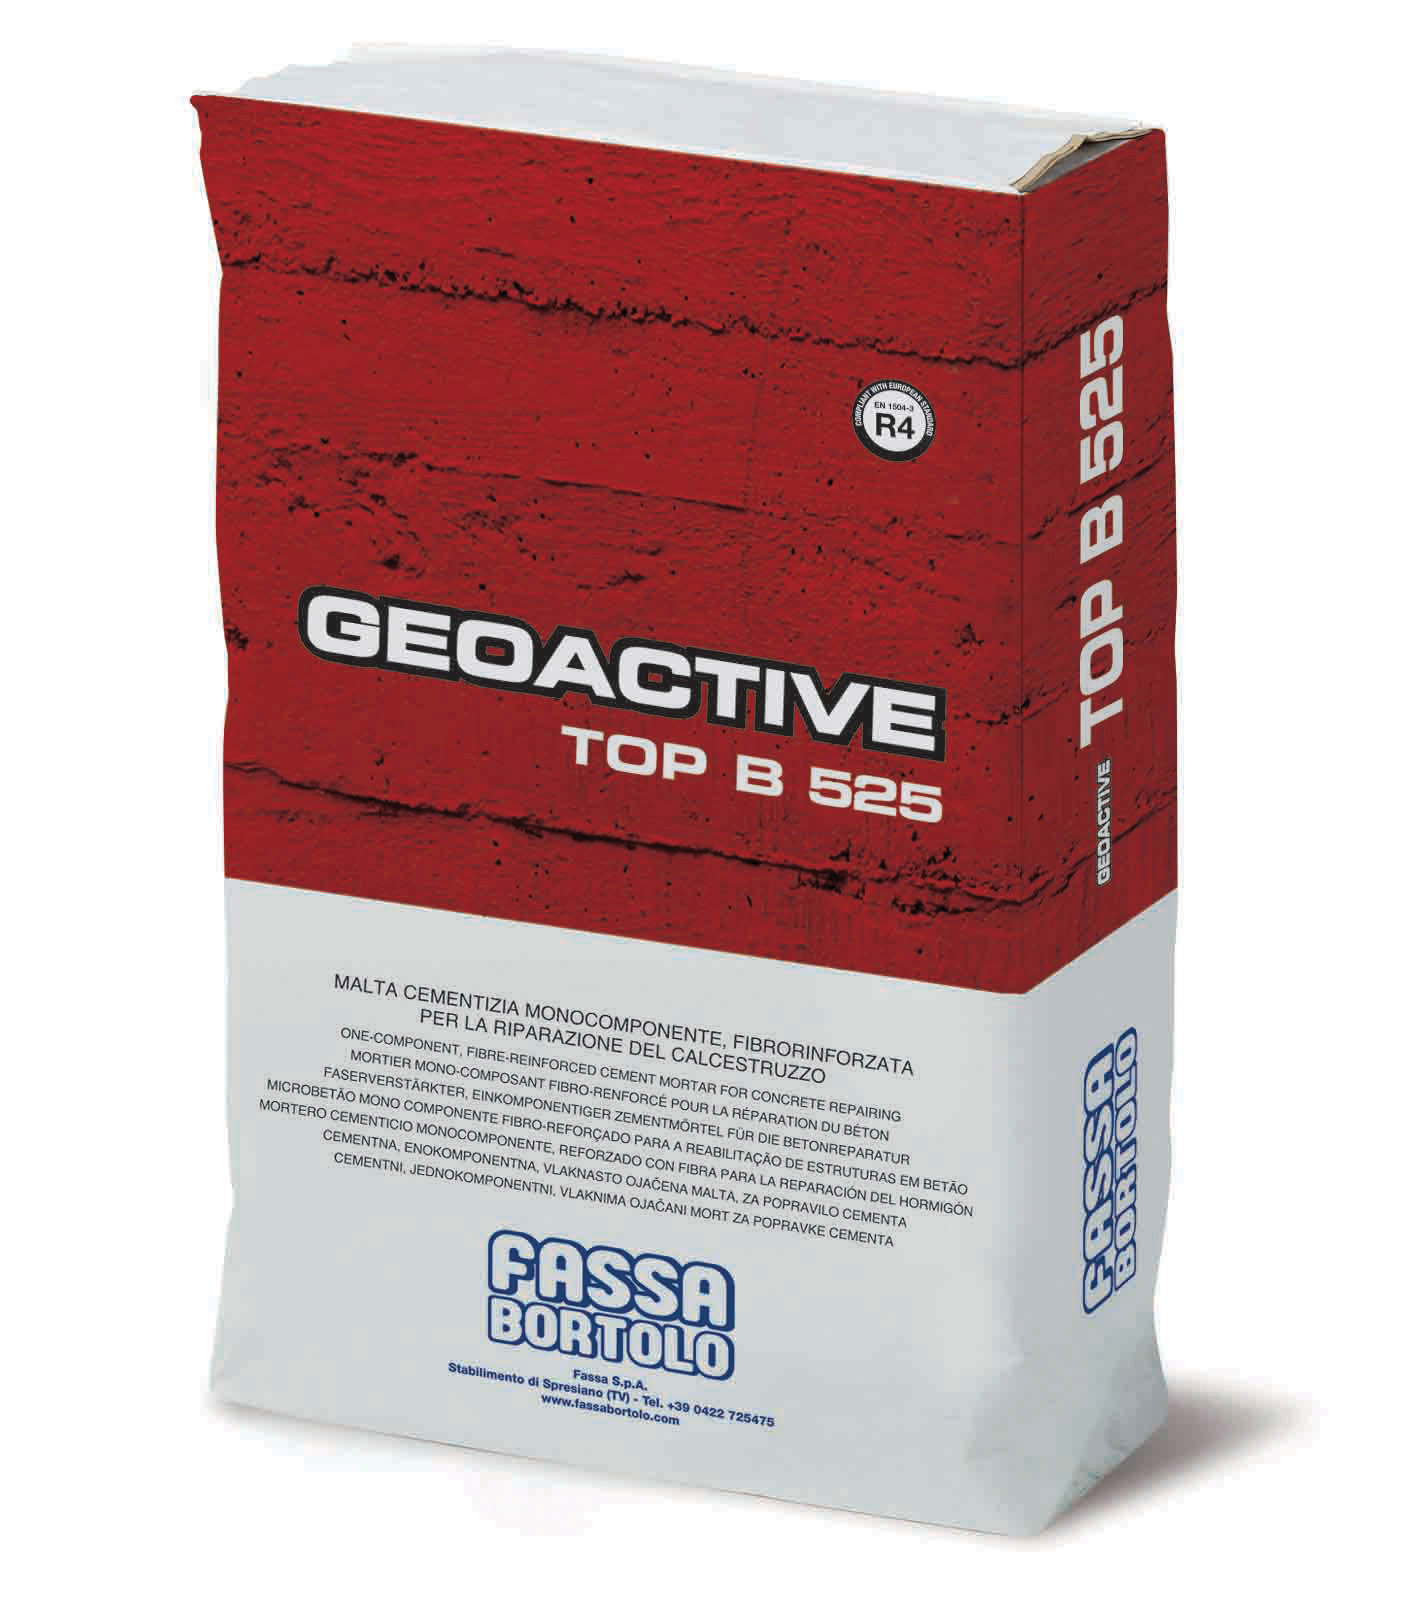 GEOACTIVE TOP B 525